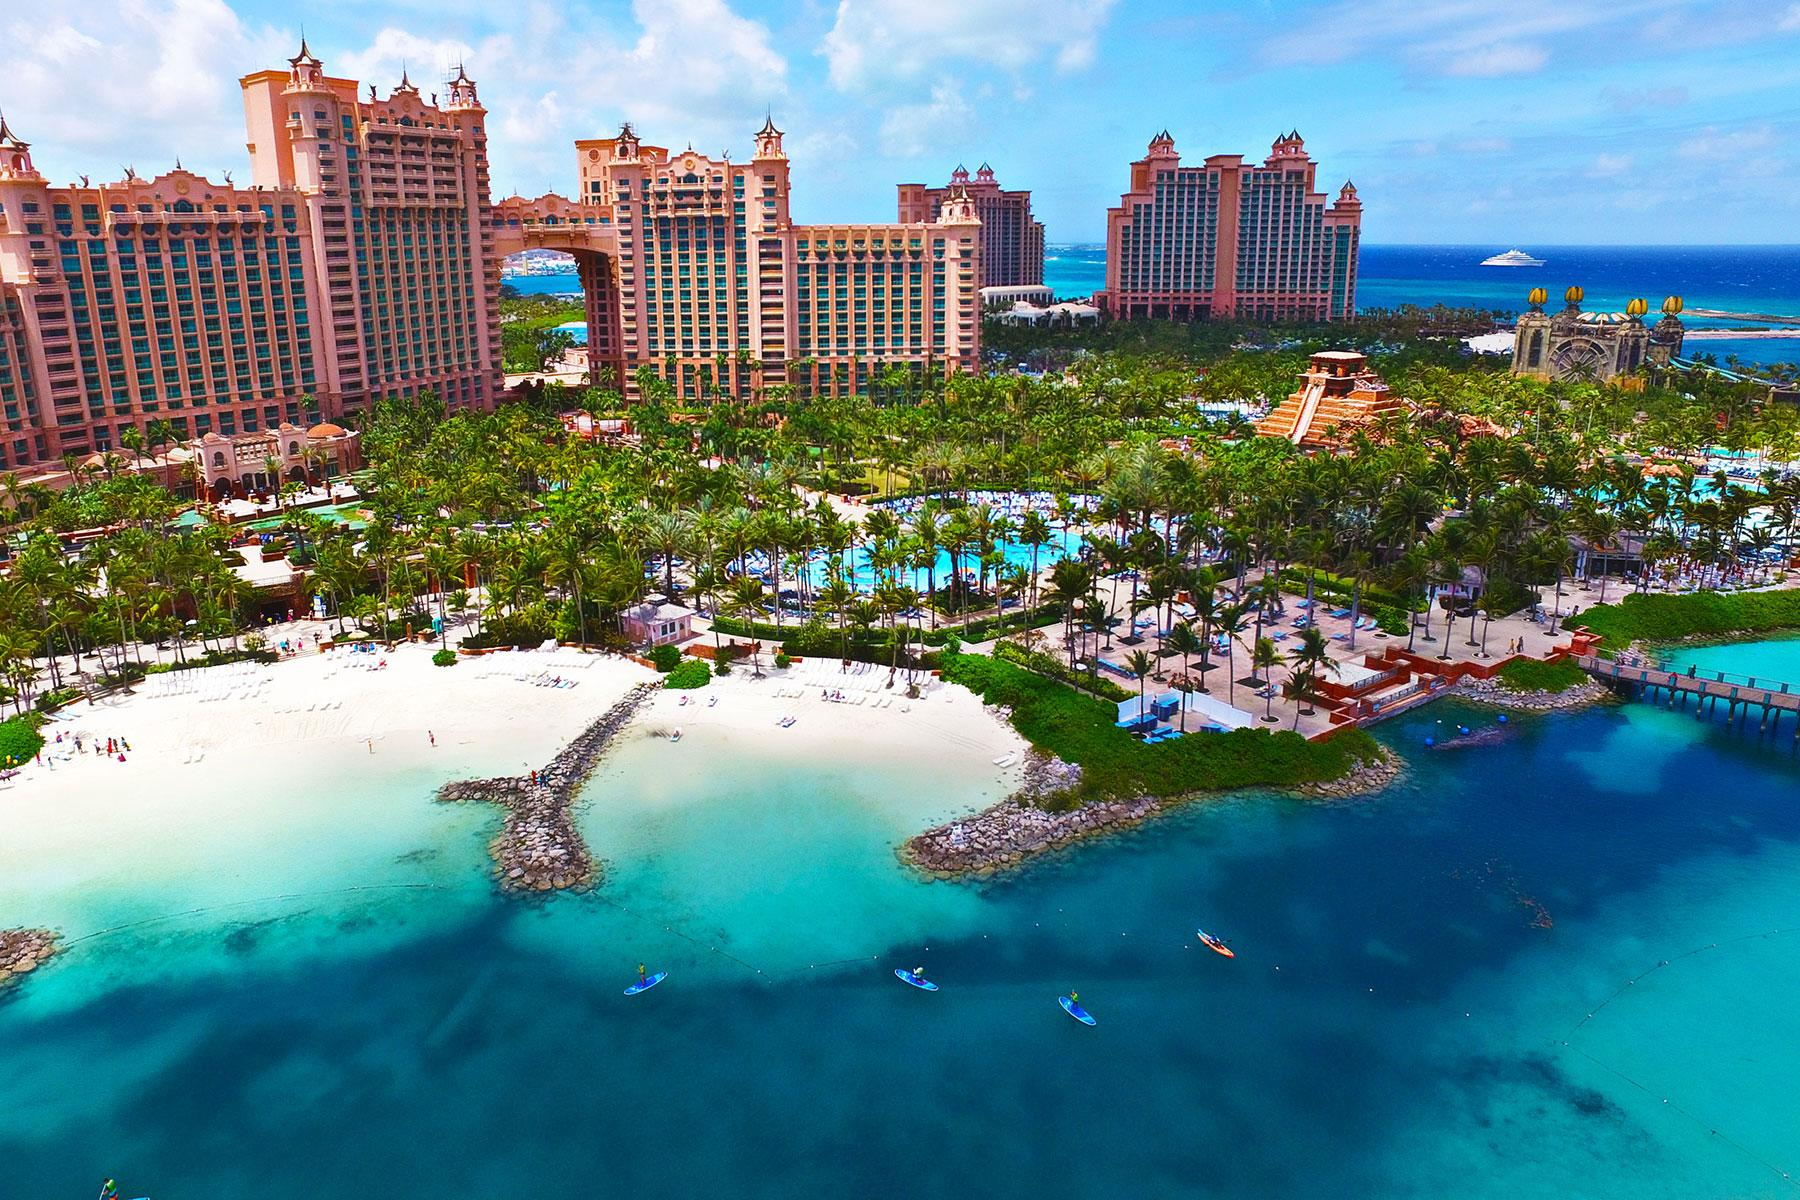 The Best Things To Do In The Bahamas